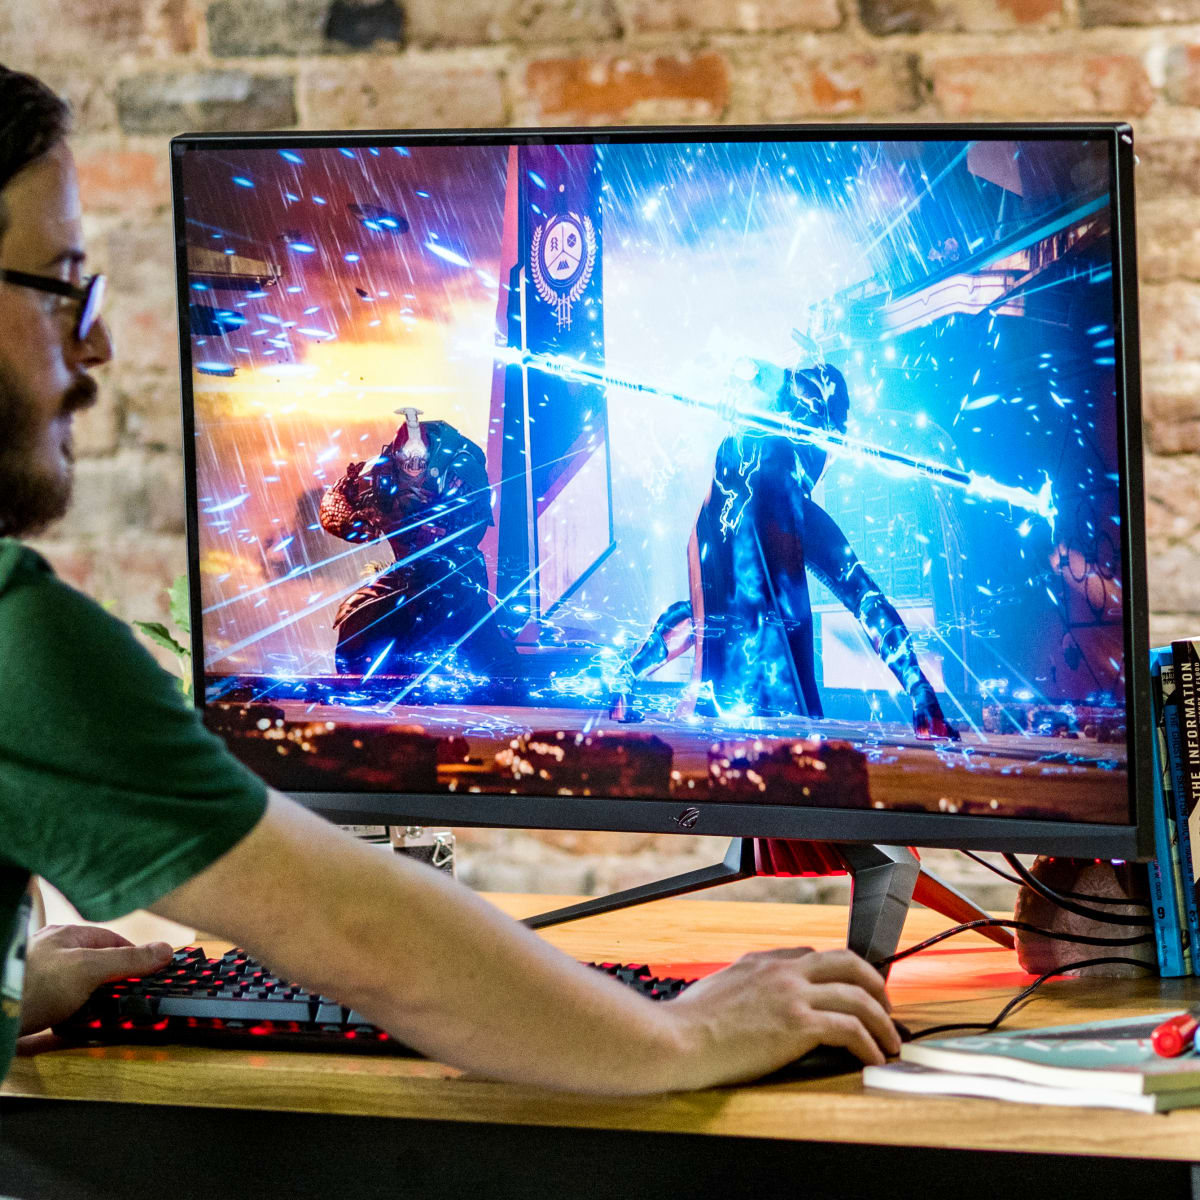 The Best 32-inch Gaming Monitors of 2019 - Reviewed Laptops